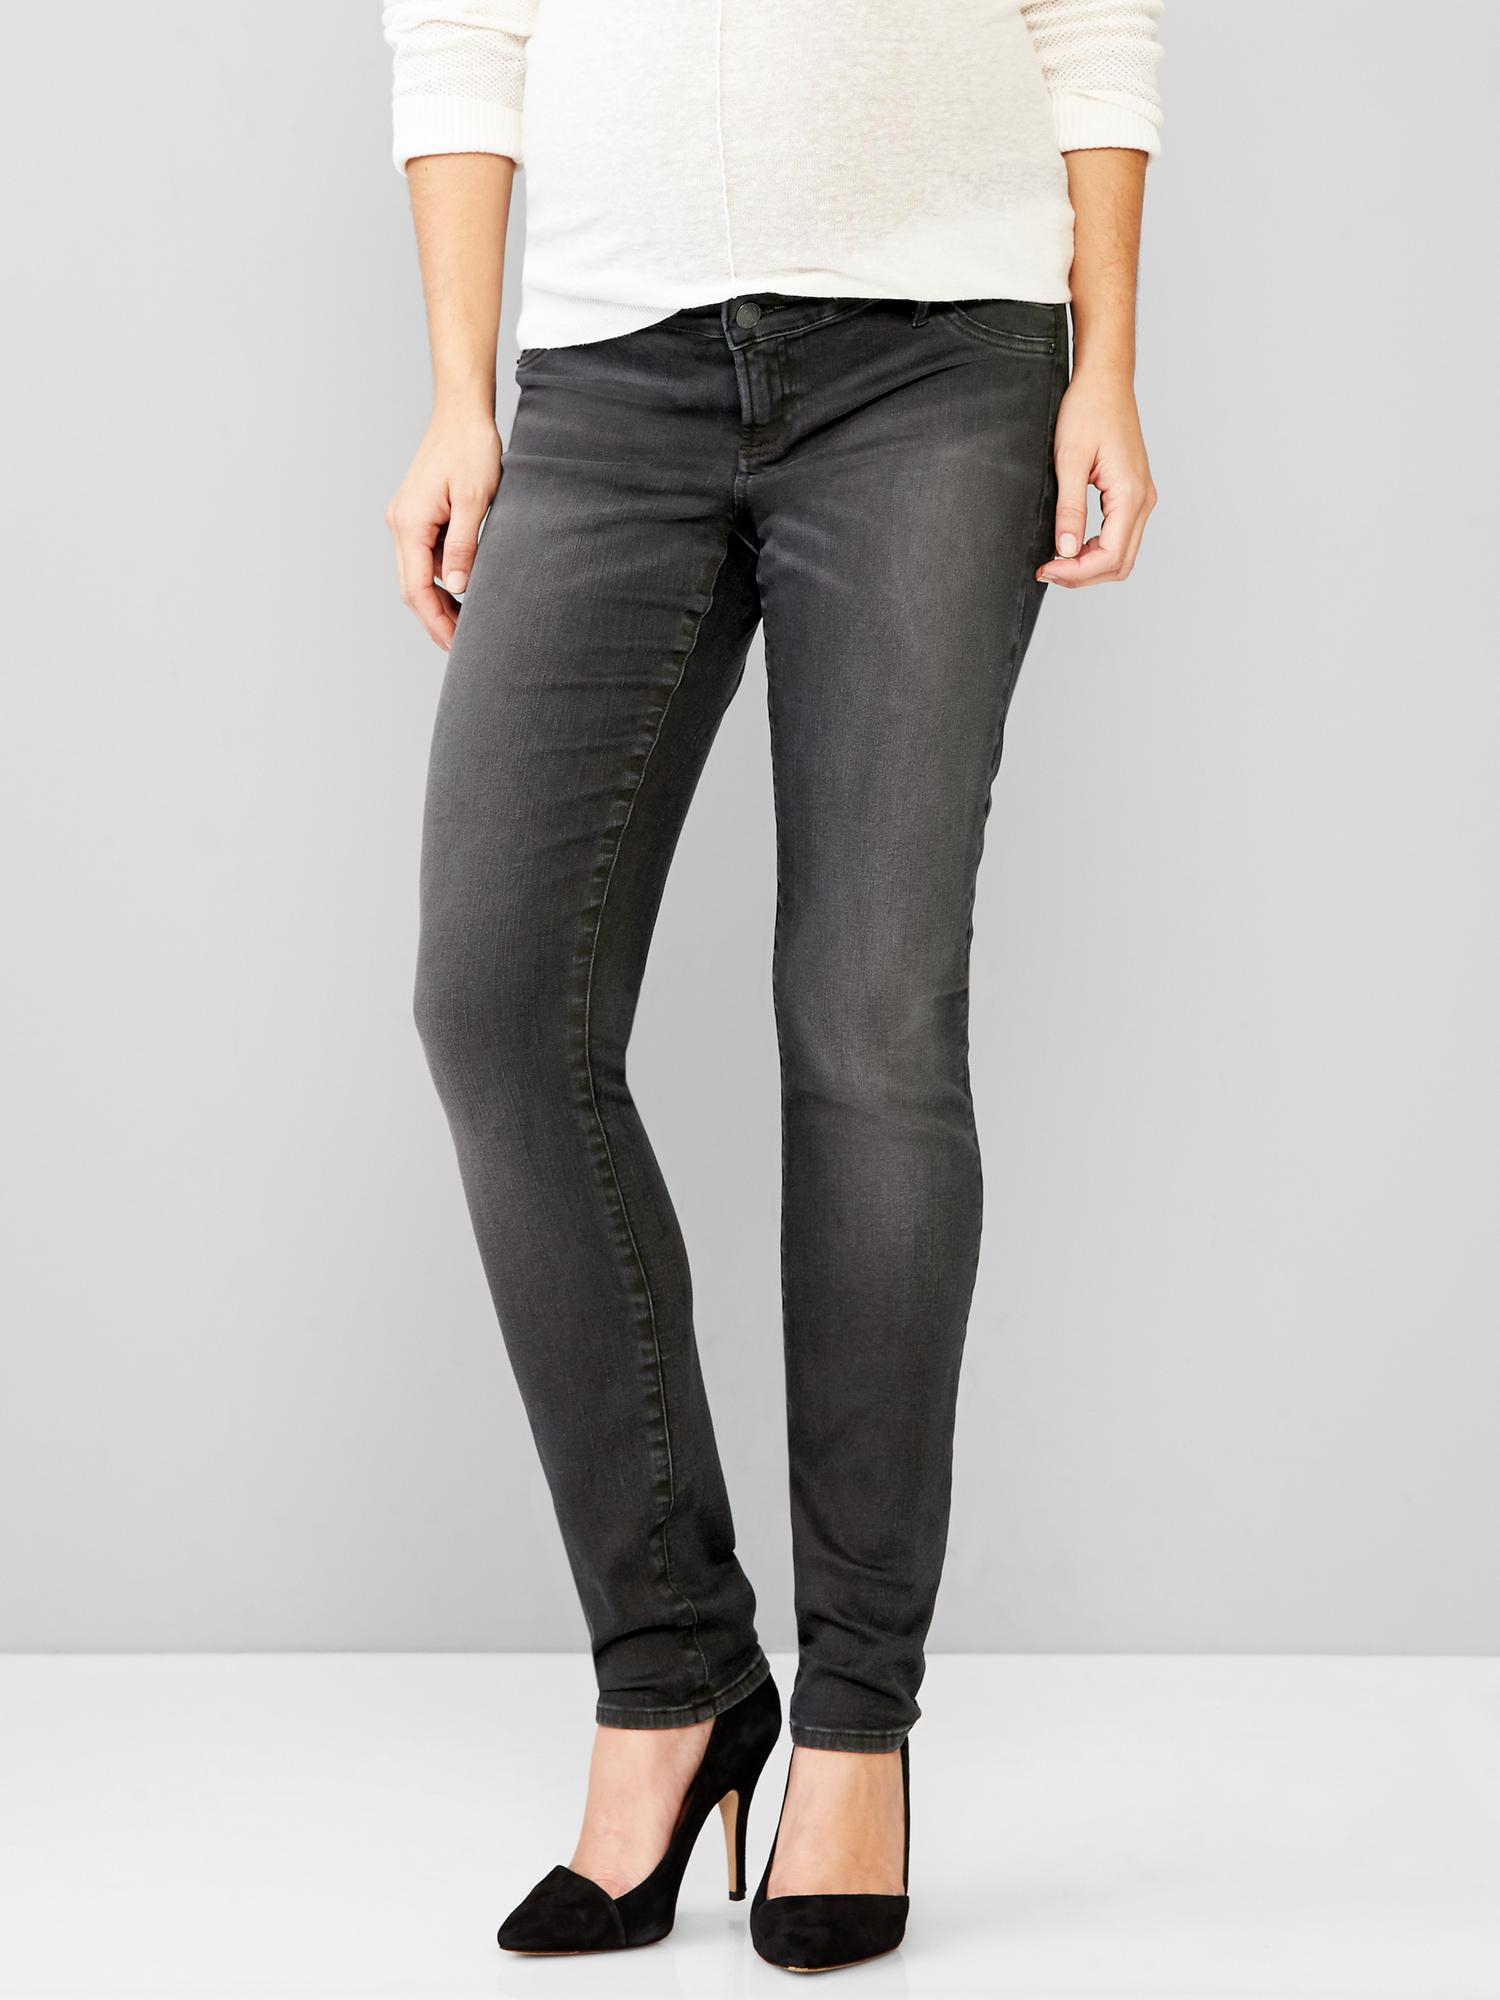 Gap 1969 Inset Panel Resolution Slim Straight Jeans in ...